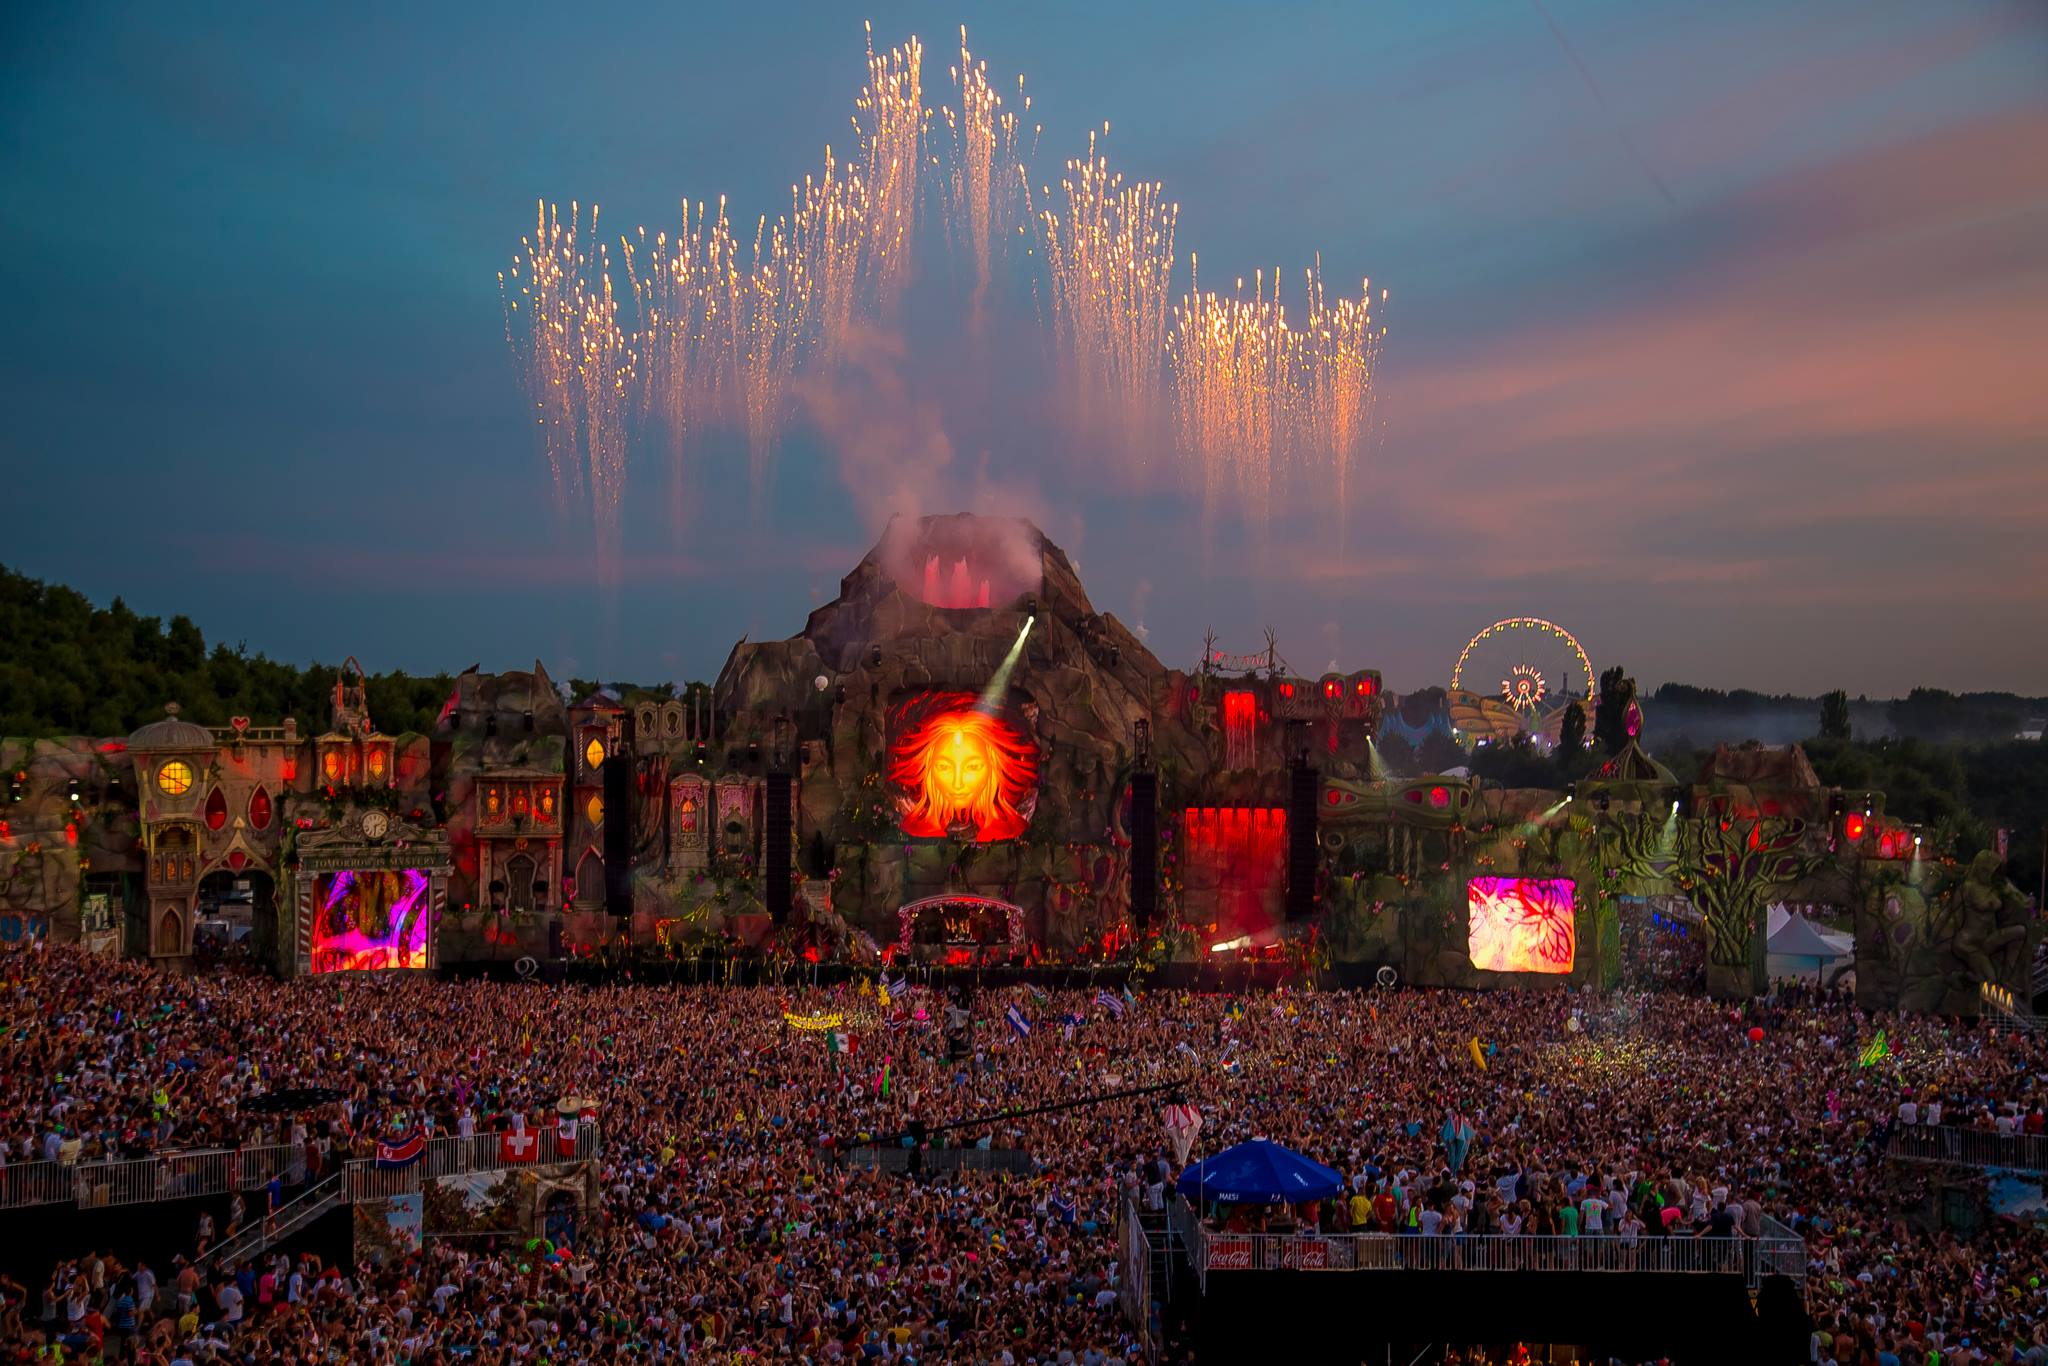 Tomorrowland 2015 Laser Show HD Wallpapers - Wallpaper Cave What A Crowd What A Stage Tomorrowland 2013 In Photos